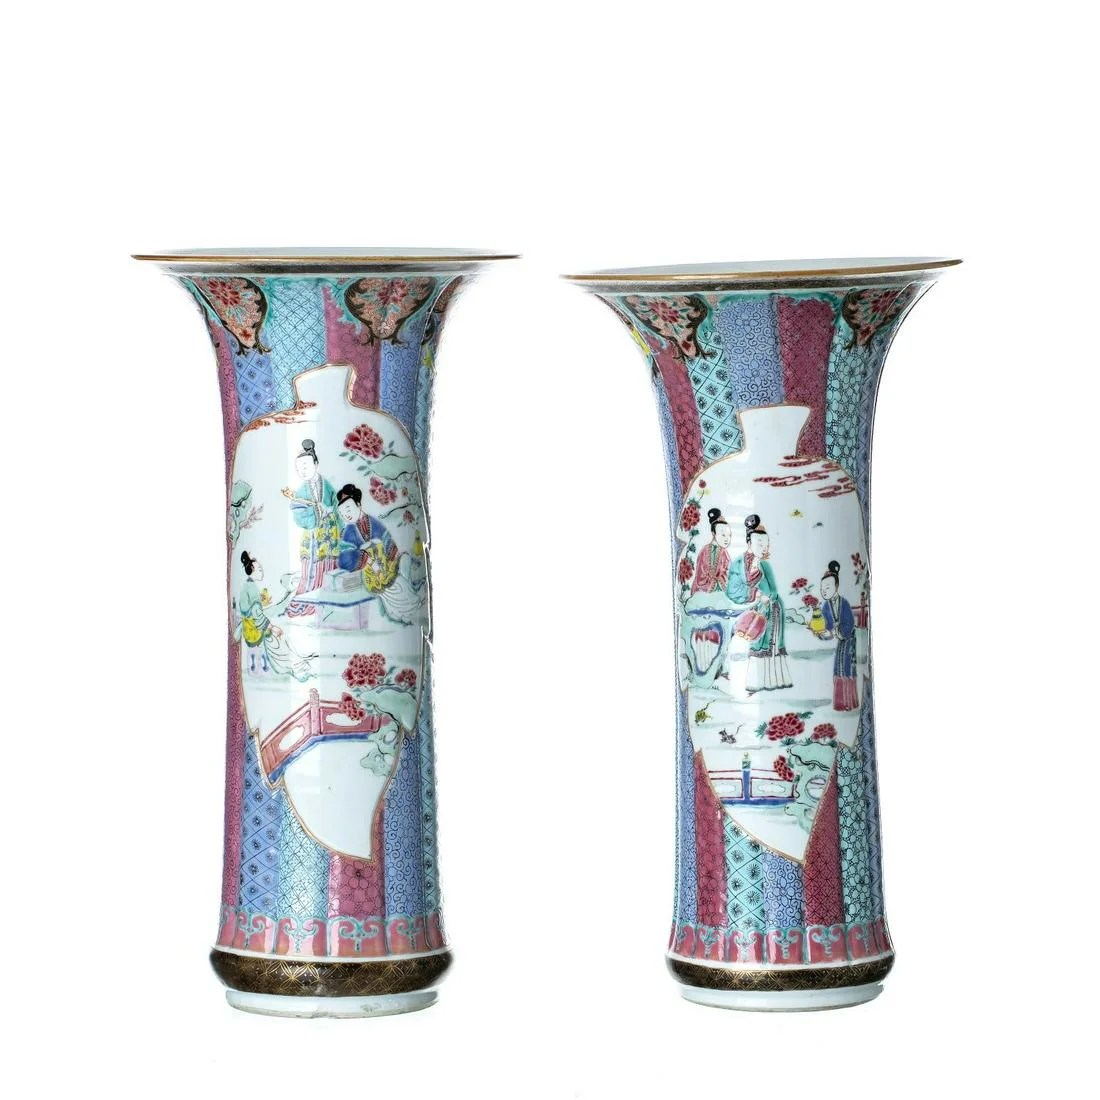 Pair of Chinese porcelain vases, Yongzheng